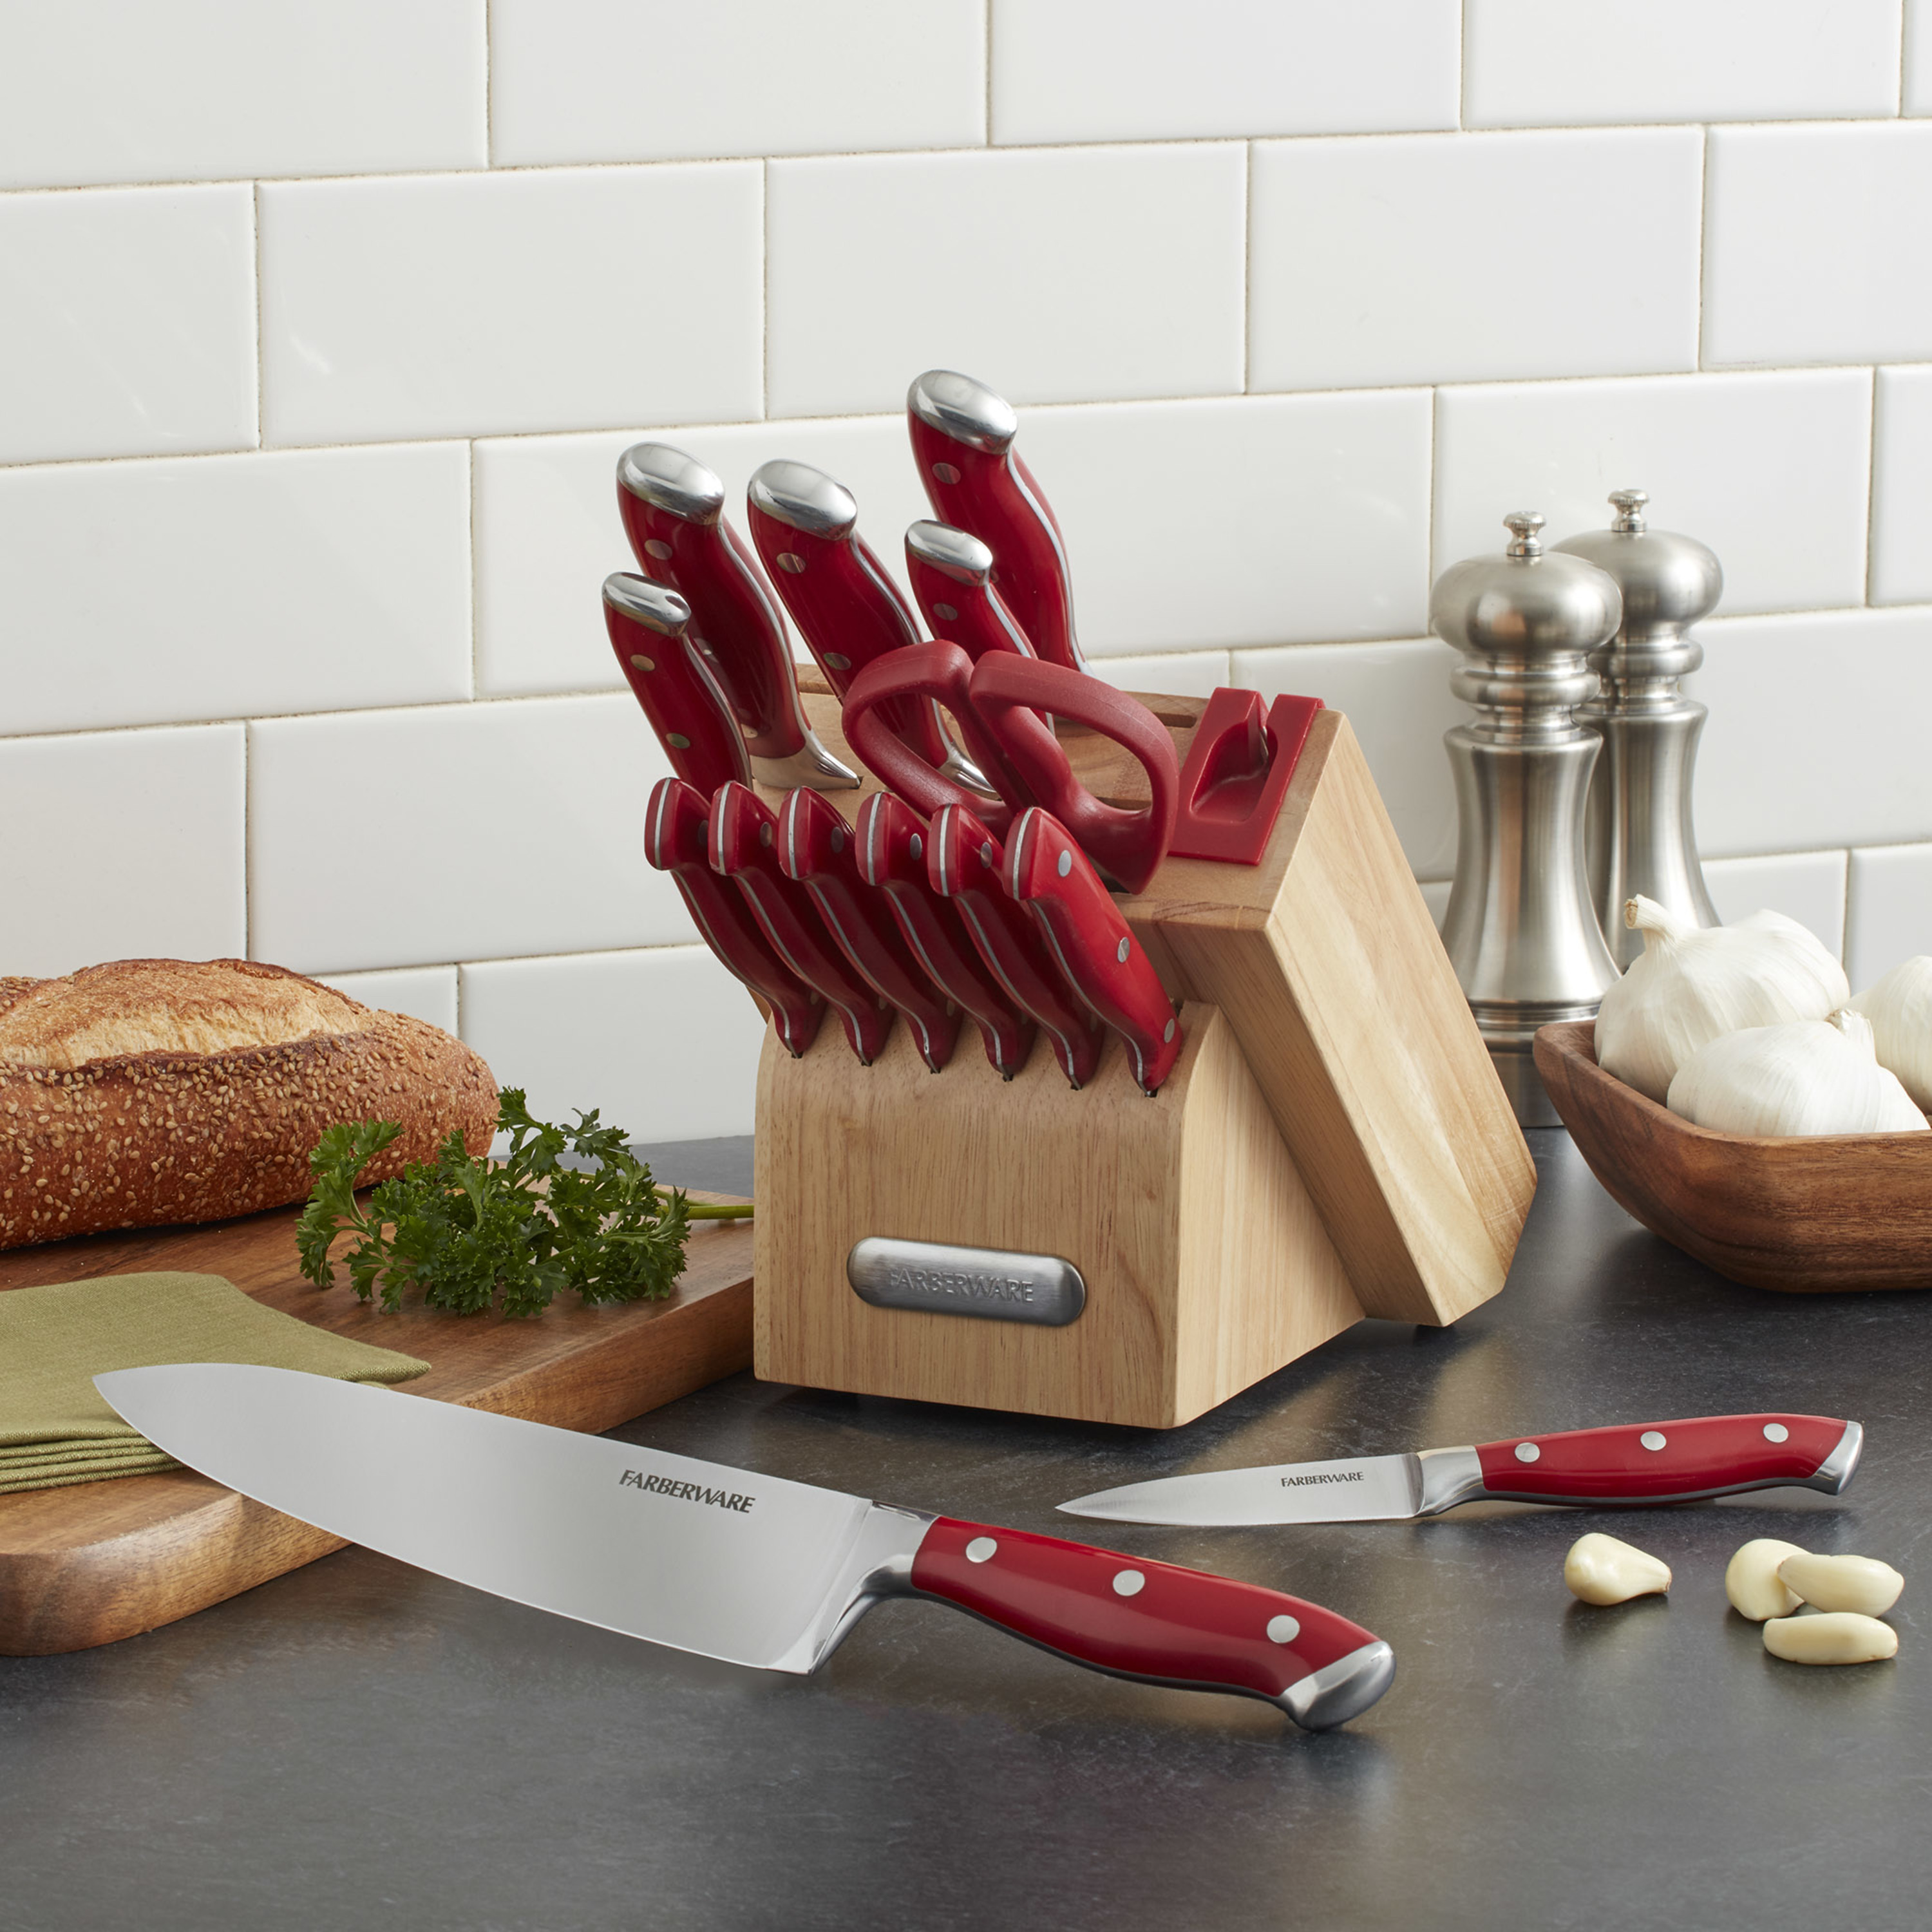 Click here to buy Farberware Edgekeeper 15-Piece Forged Triple-Riveted Knife Set by Lifetime Brands.